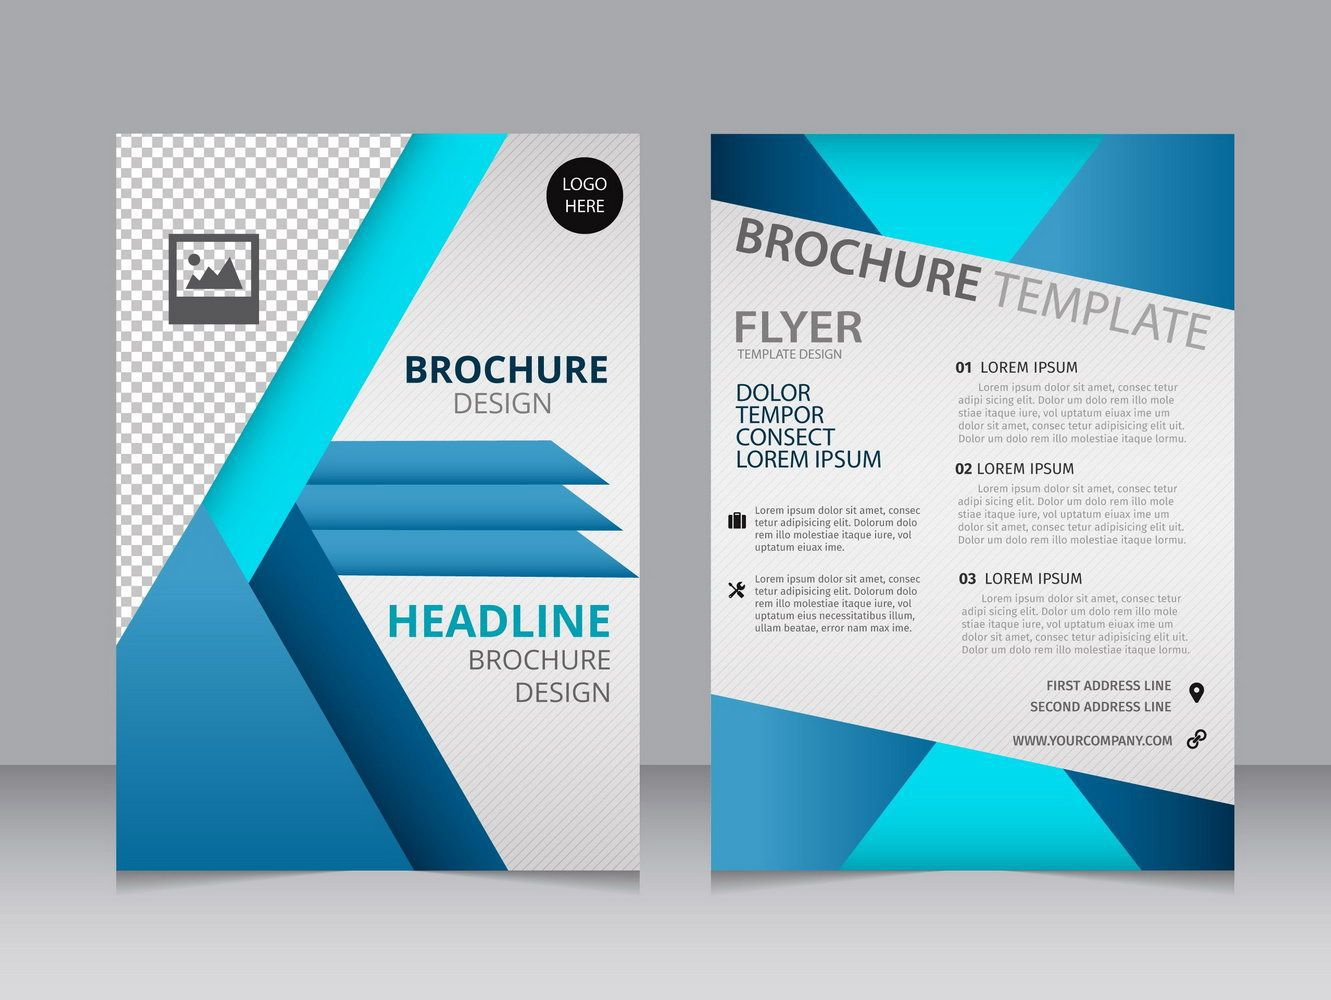 001 Amazing M Word Brochure Template Free Download Concept  Microsoft 2007Full